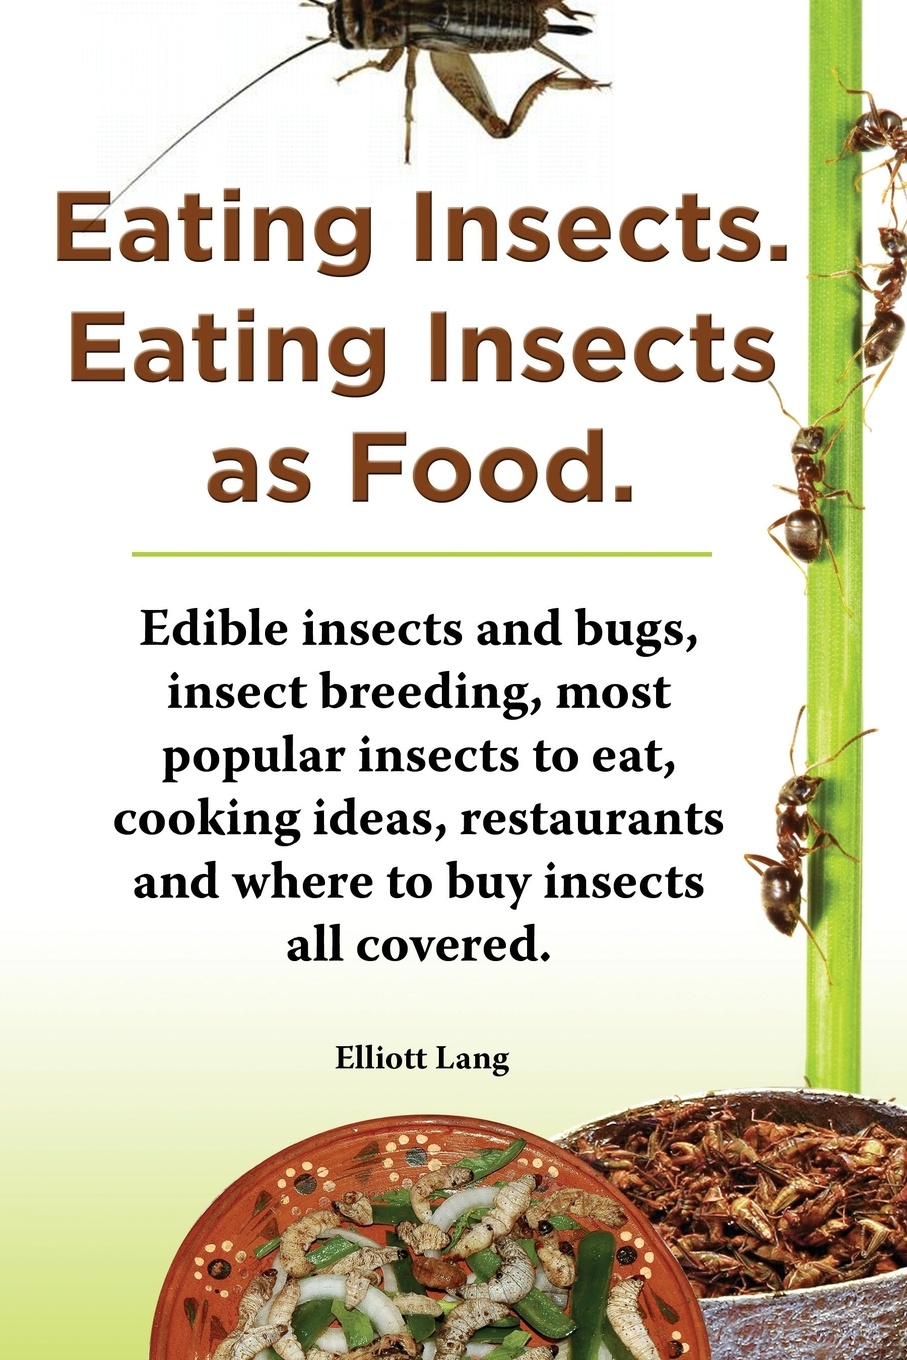 Elliott Lang Eating Insects. Insects as Food. Edible and Bugs, Insect Breeding, Most Popular to Eat, Cooking Ideas, Restaurants Where